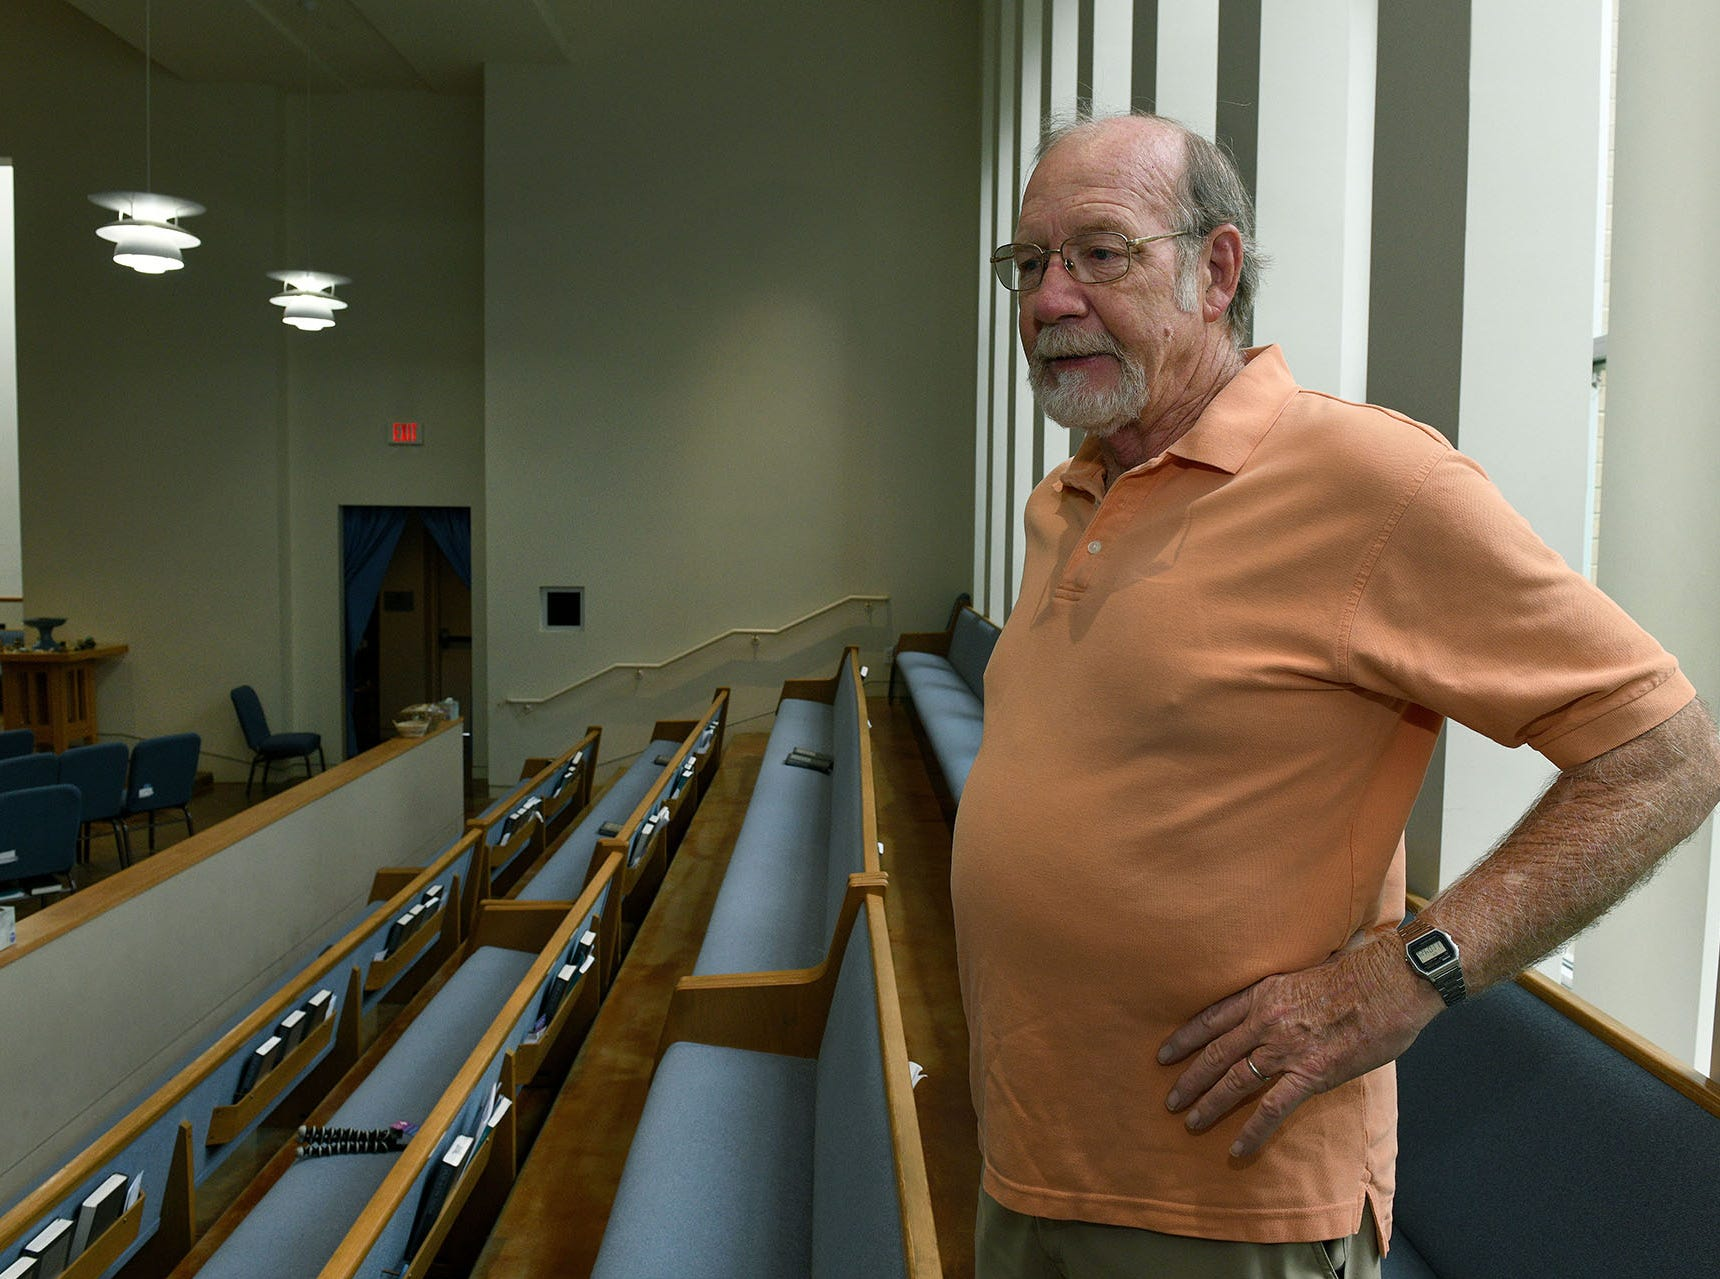 Terry Uselton was one of the people who tackled the shooter a decade ago at the Tennessee Valley Unitarian Universalist Church in Knoxville. Uselton talks in the church sanctuary Wednesday, August 1, 2018 about how his experience has effected him.